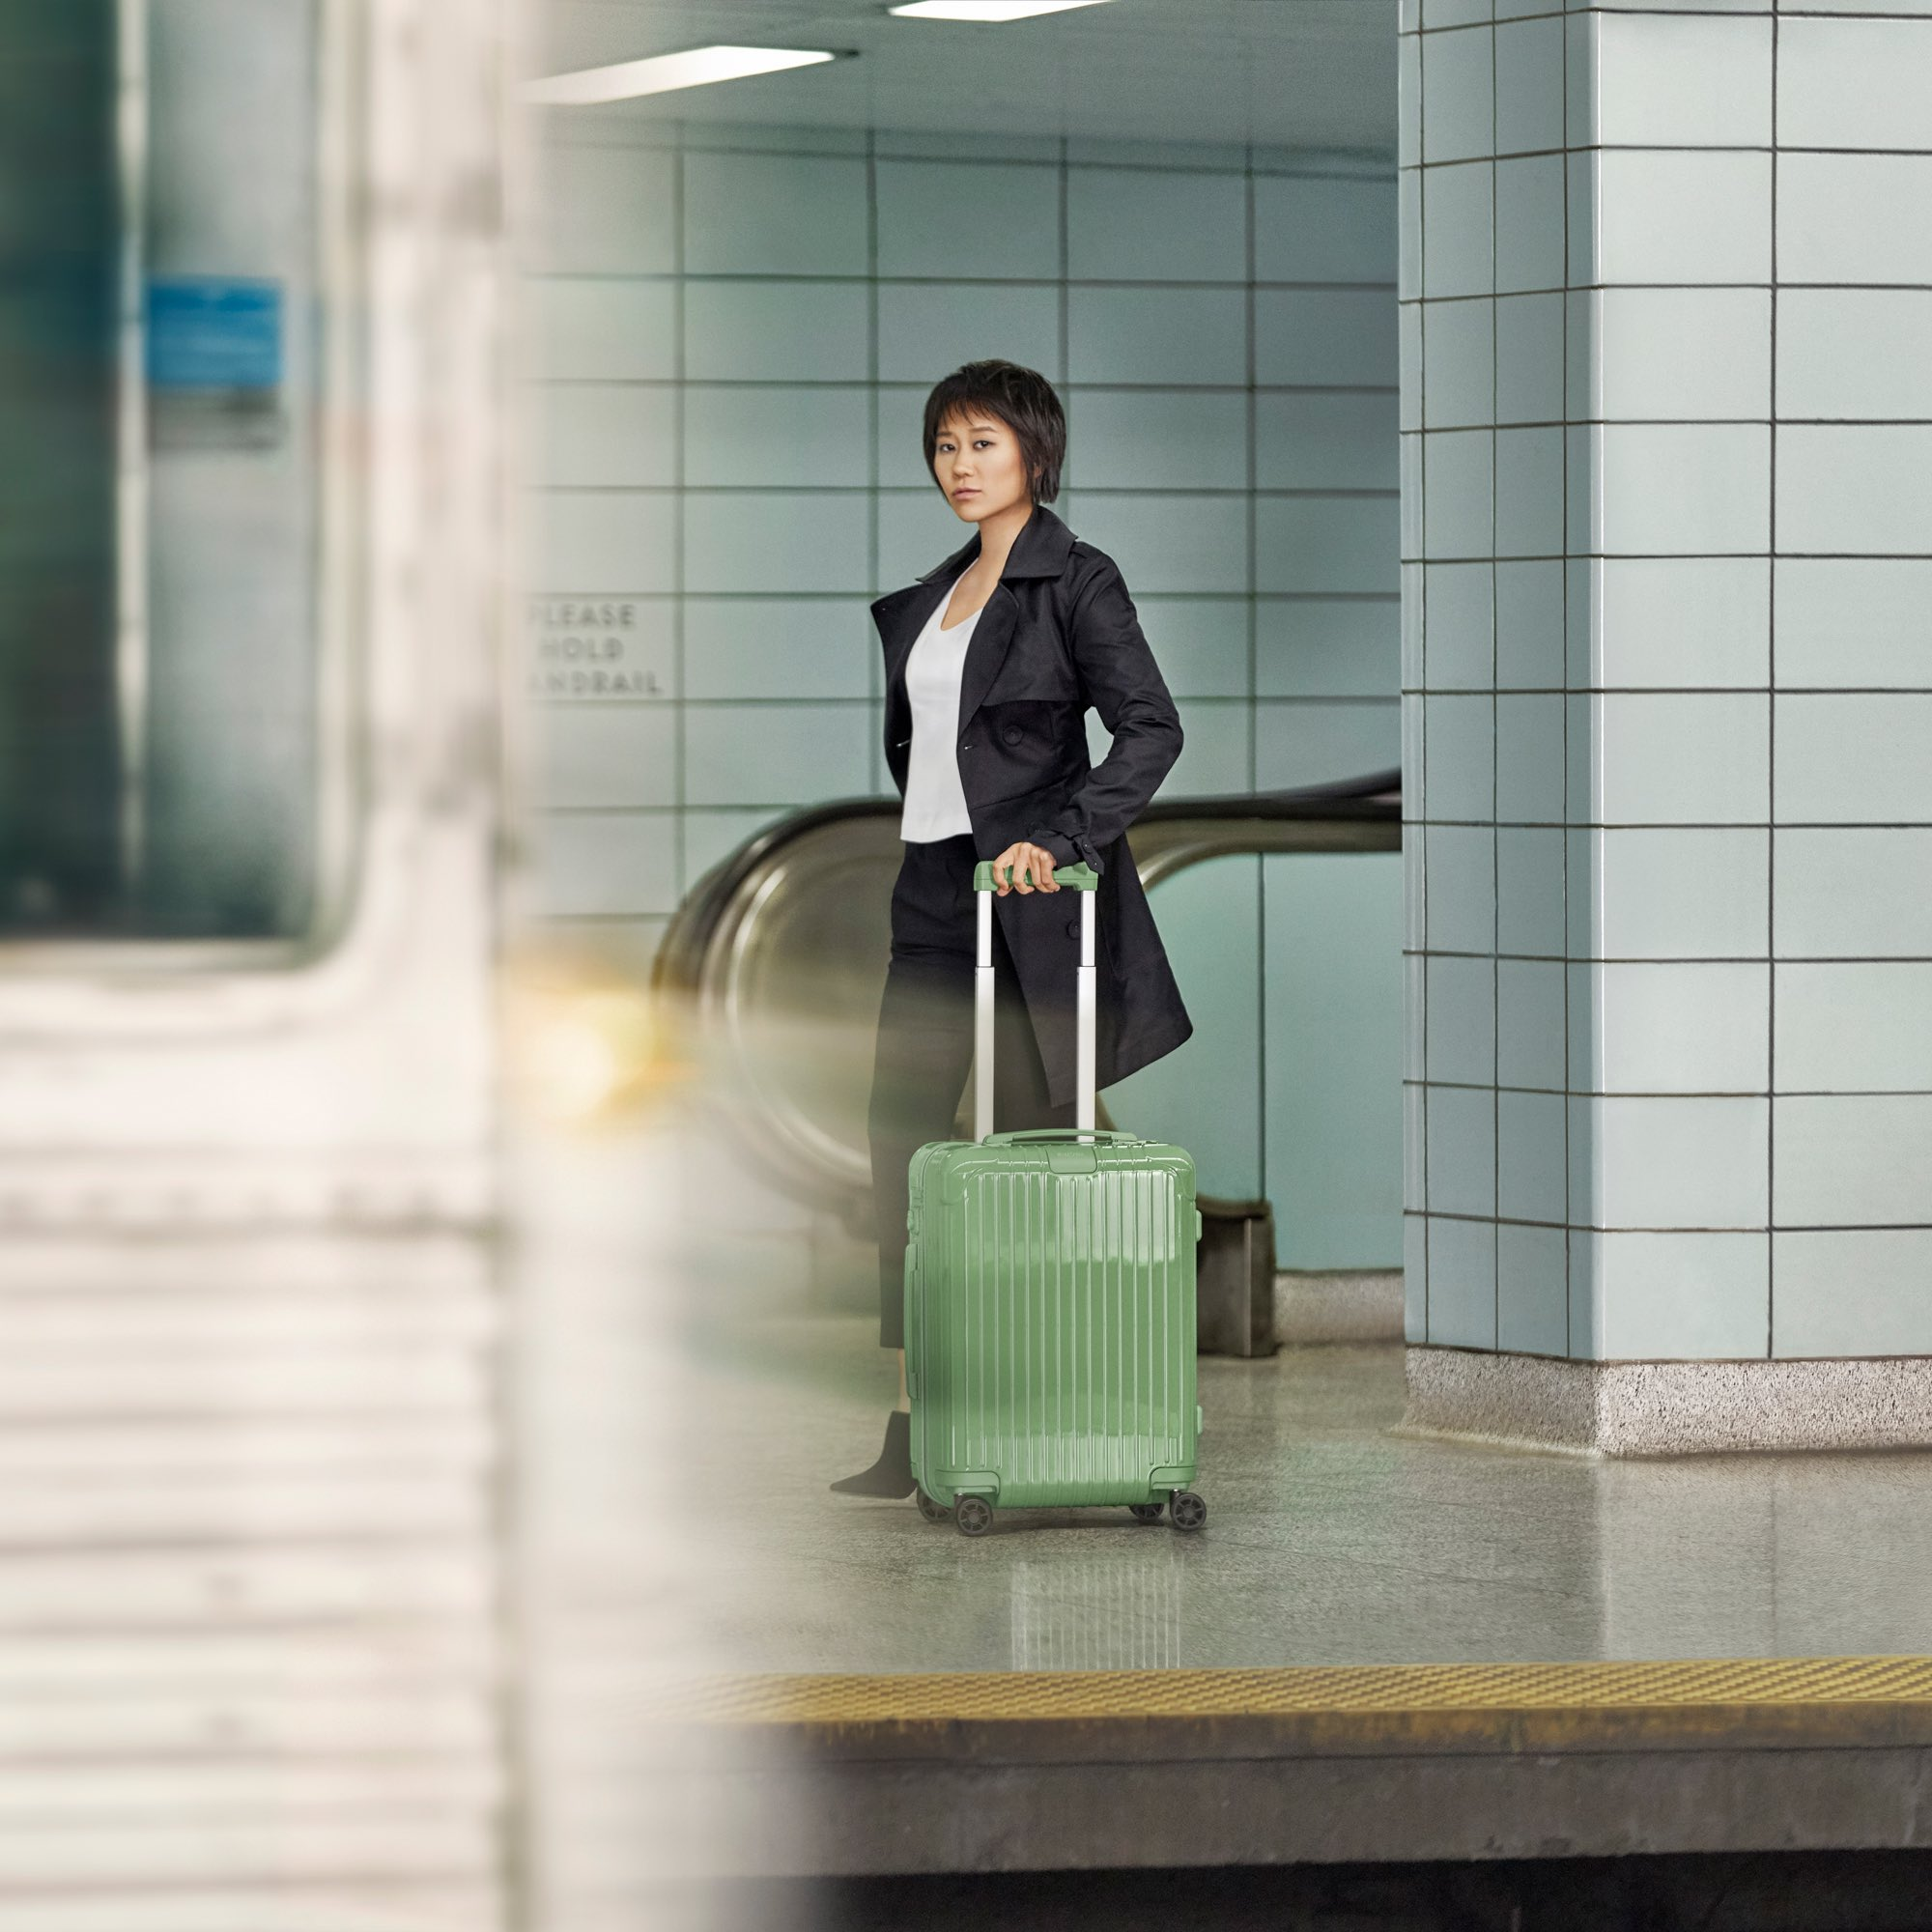 @YujaWang Follow Excited to be working with @RIMOWA on their latest campaign. Stay tuned for the release of my travel film on RIMOWA.com. #RIMOWA #NeverStill